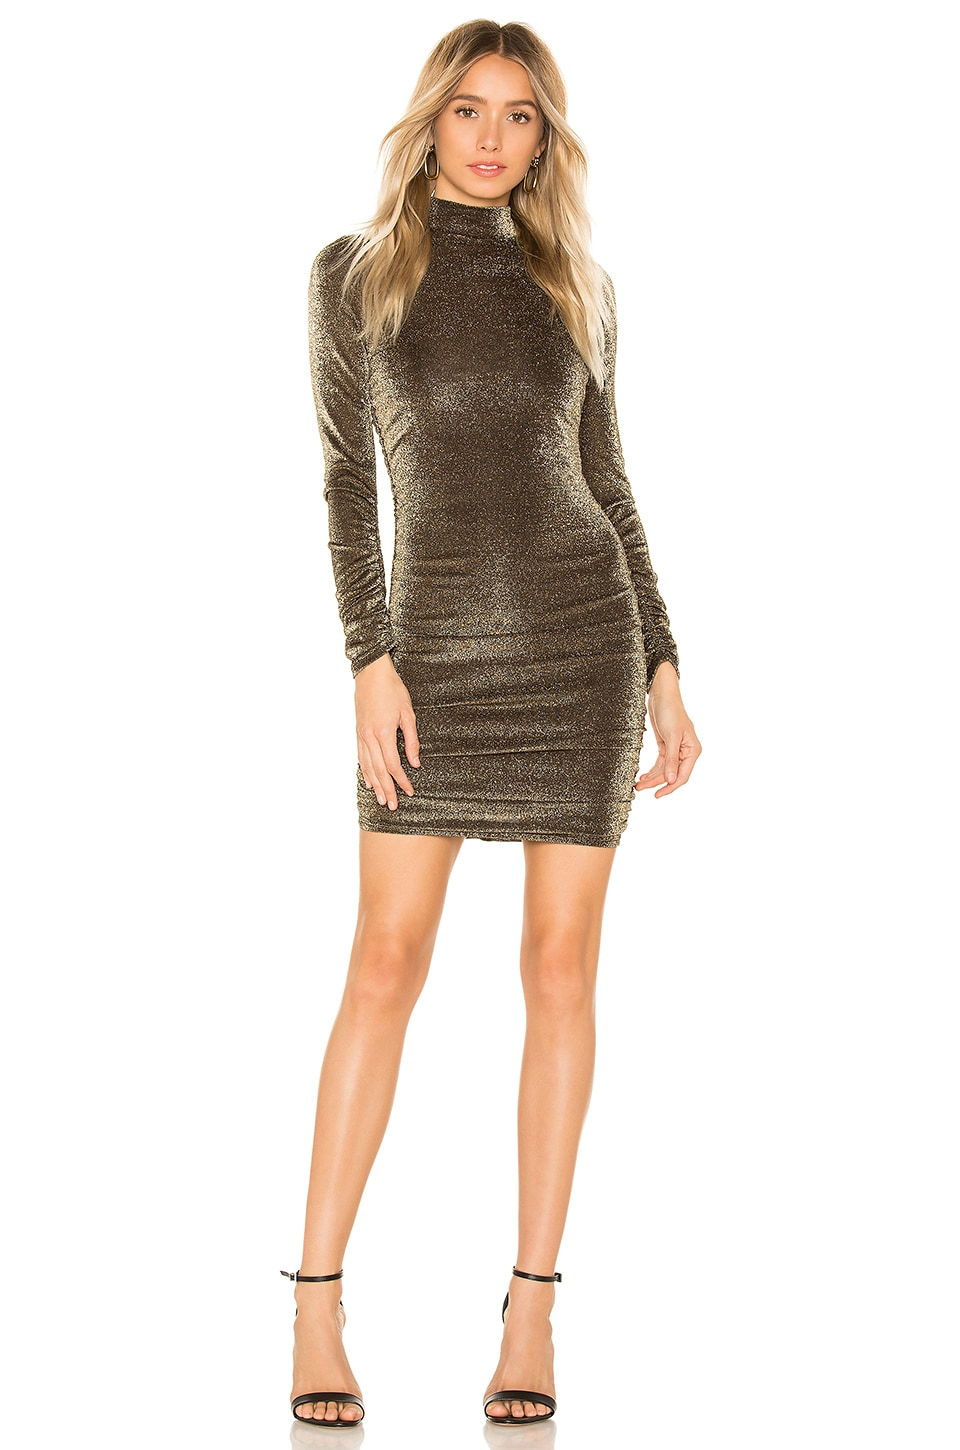 LIKELY Wylie Dress in Gold